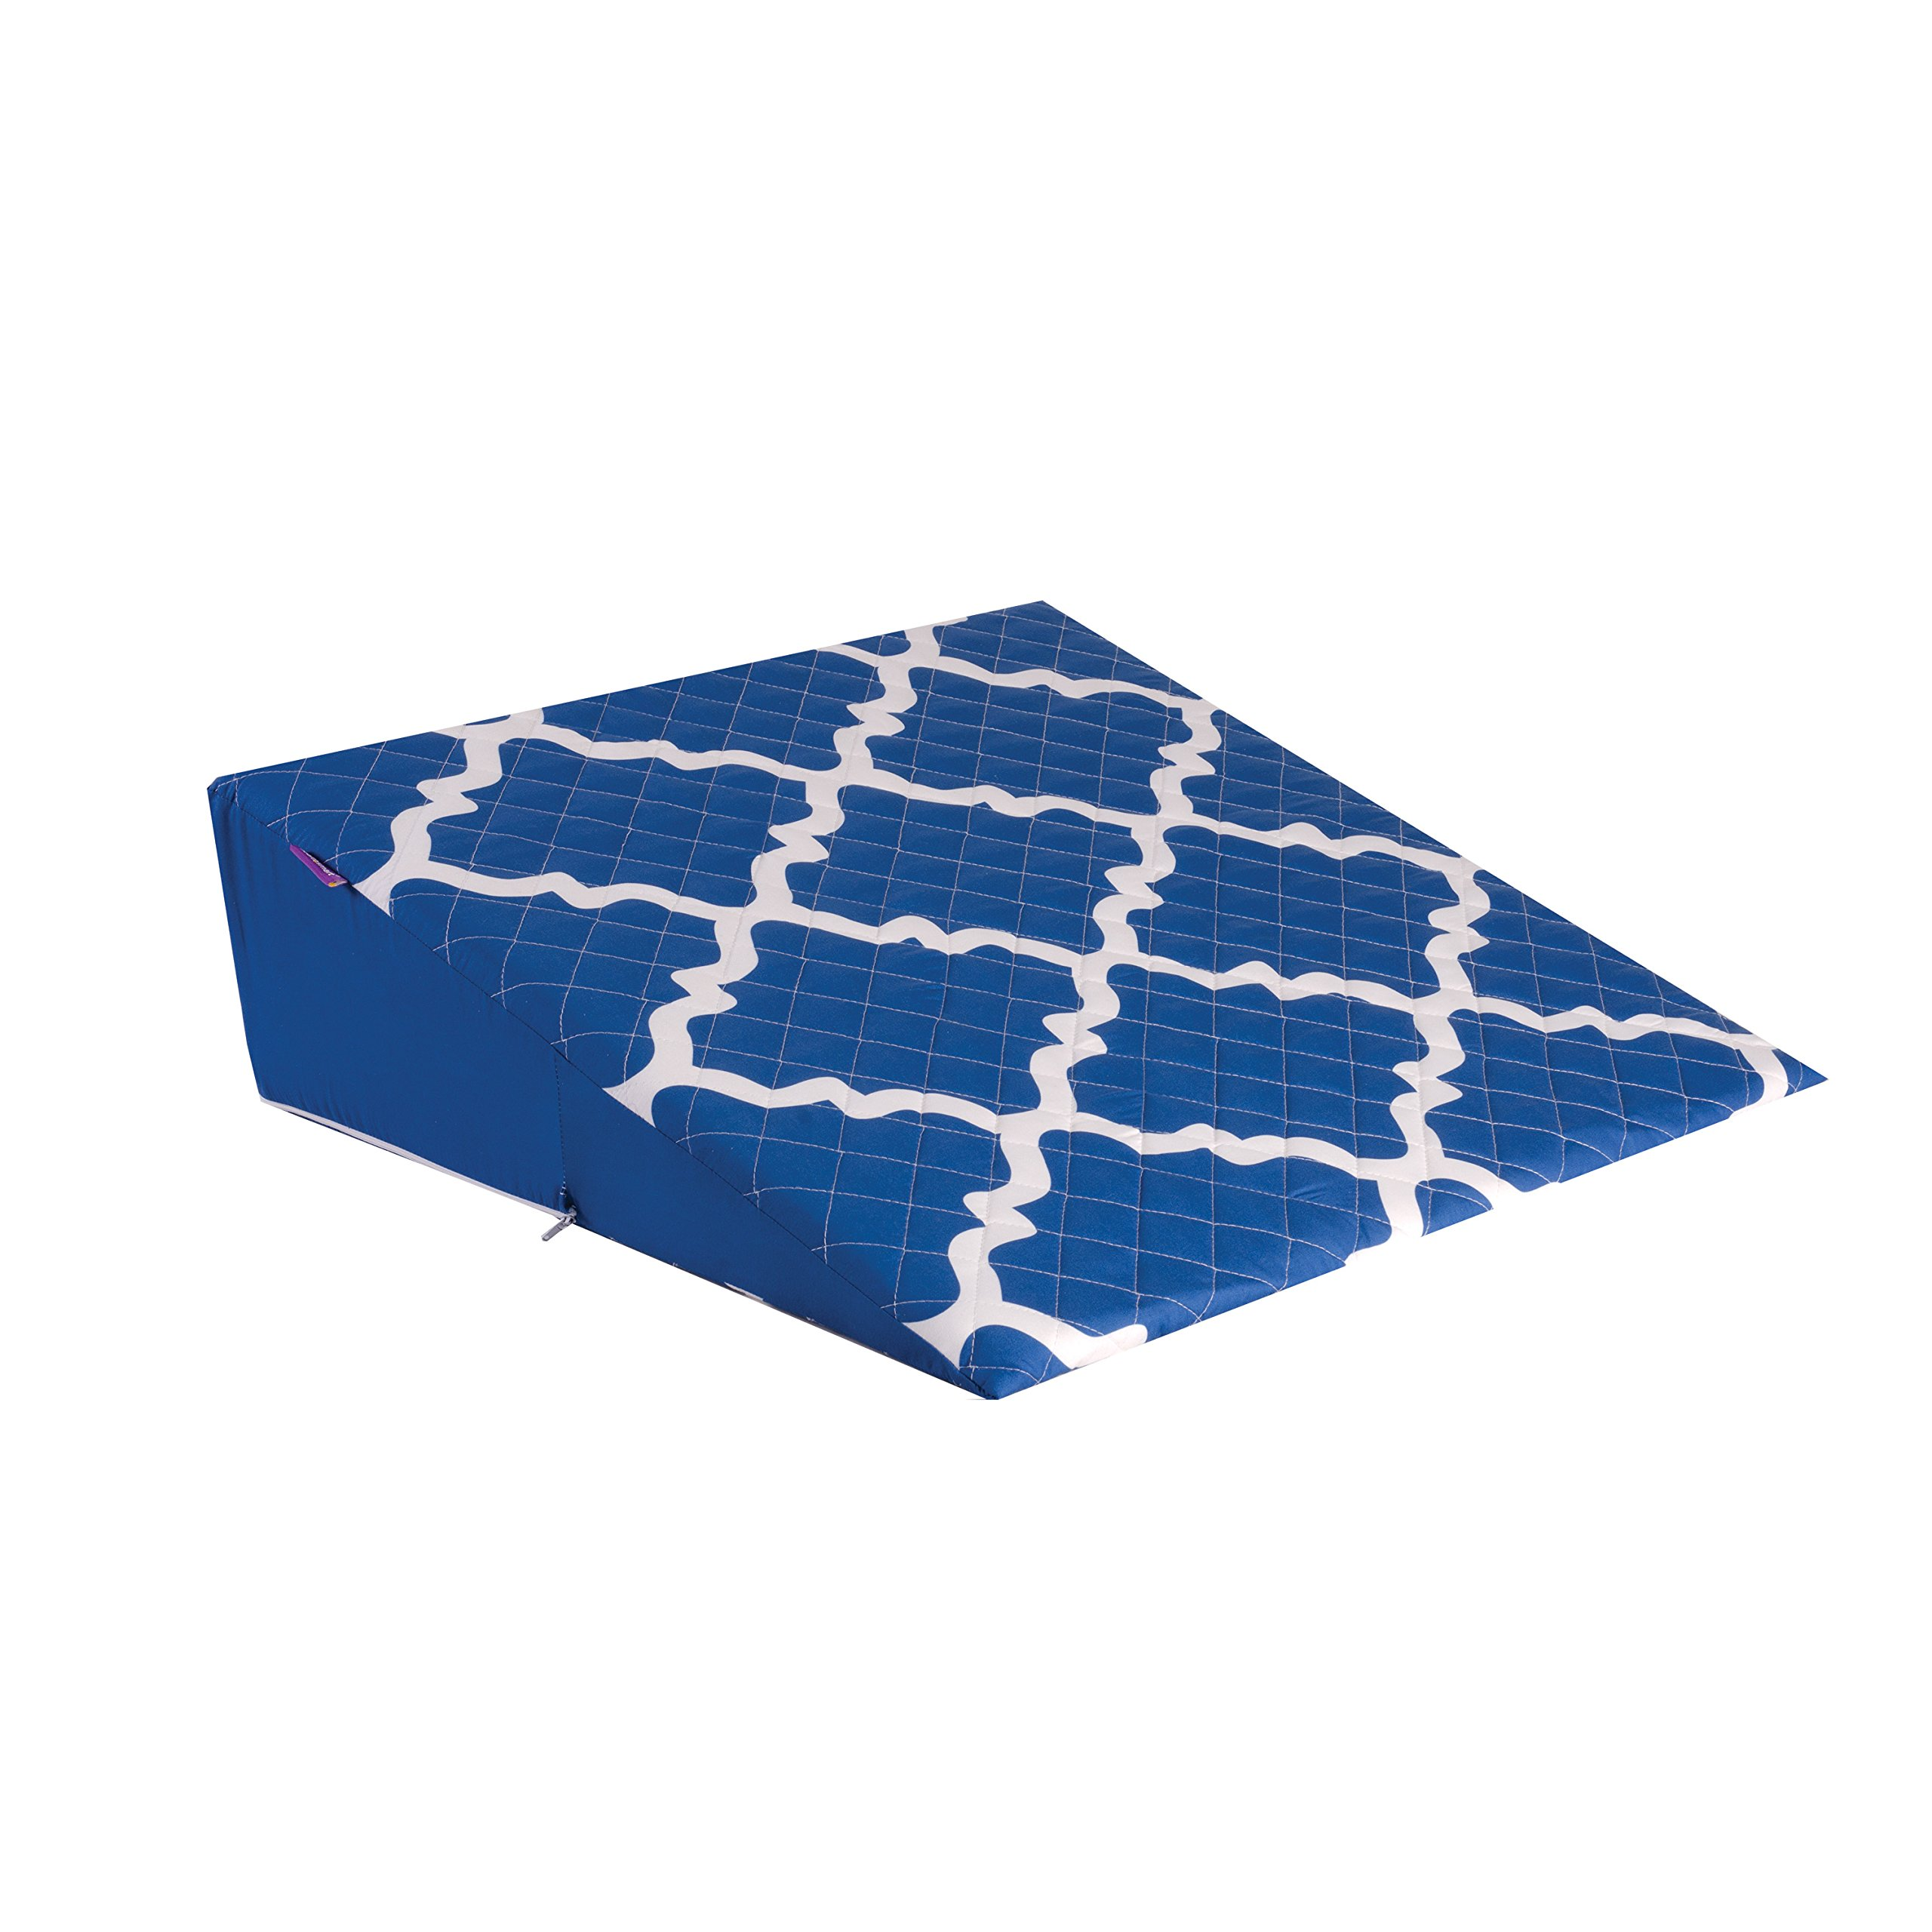 HealthSmart Premium Foam Comfort Bed Wedge Pillow with Spill-Resistant Cover, Blue Moroccan, 7 X 24 X 24 inches